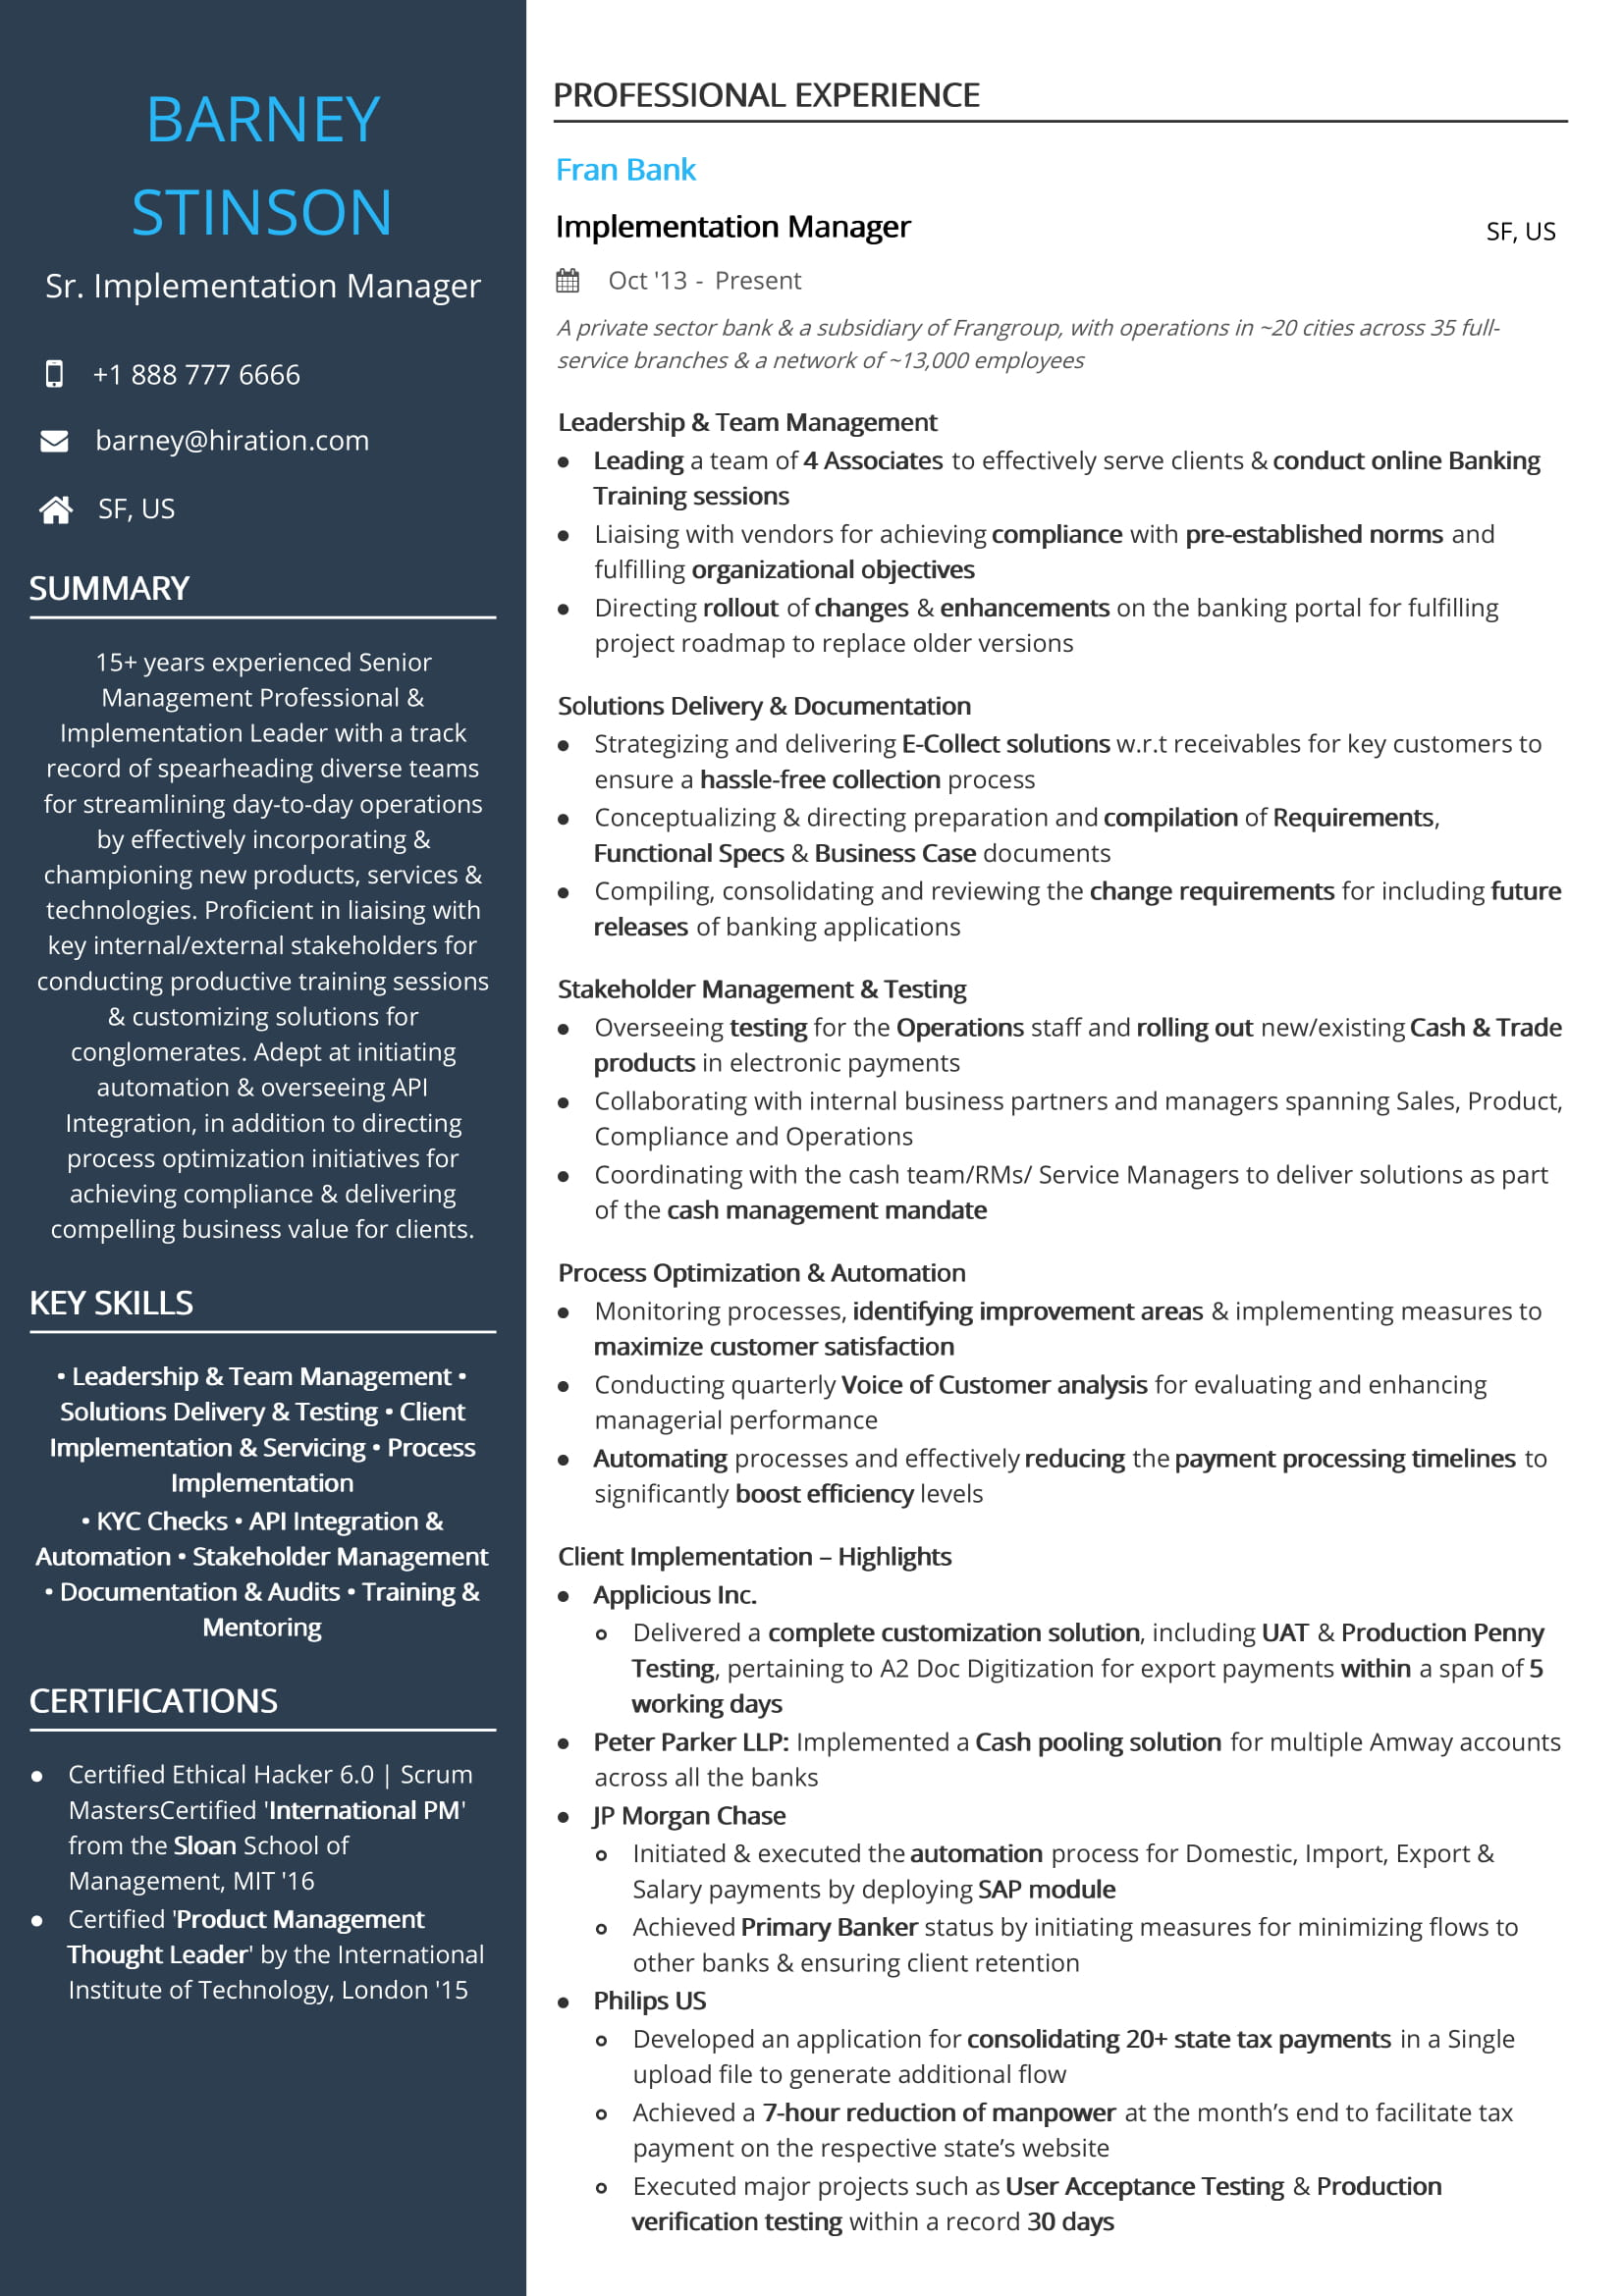 Barney Stinson Resume Senior Implementation Manager Resume Sample By Hiration